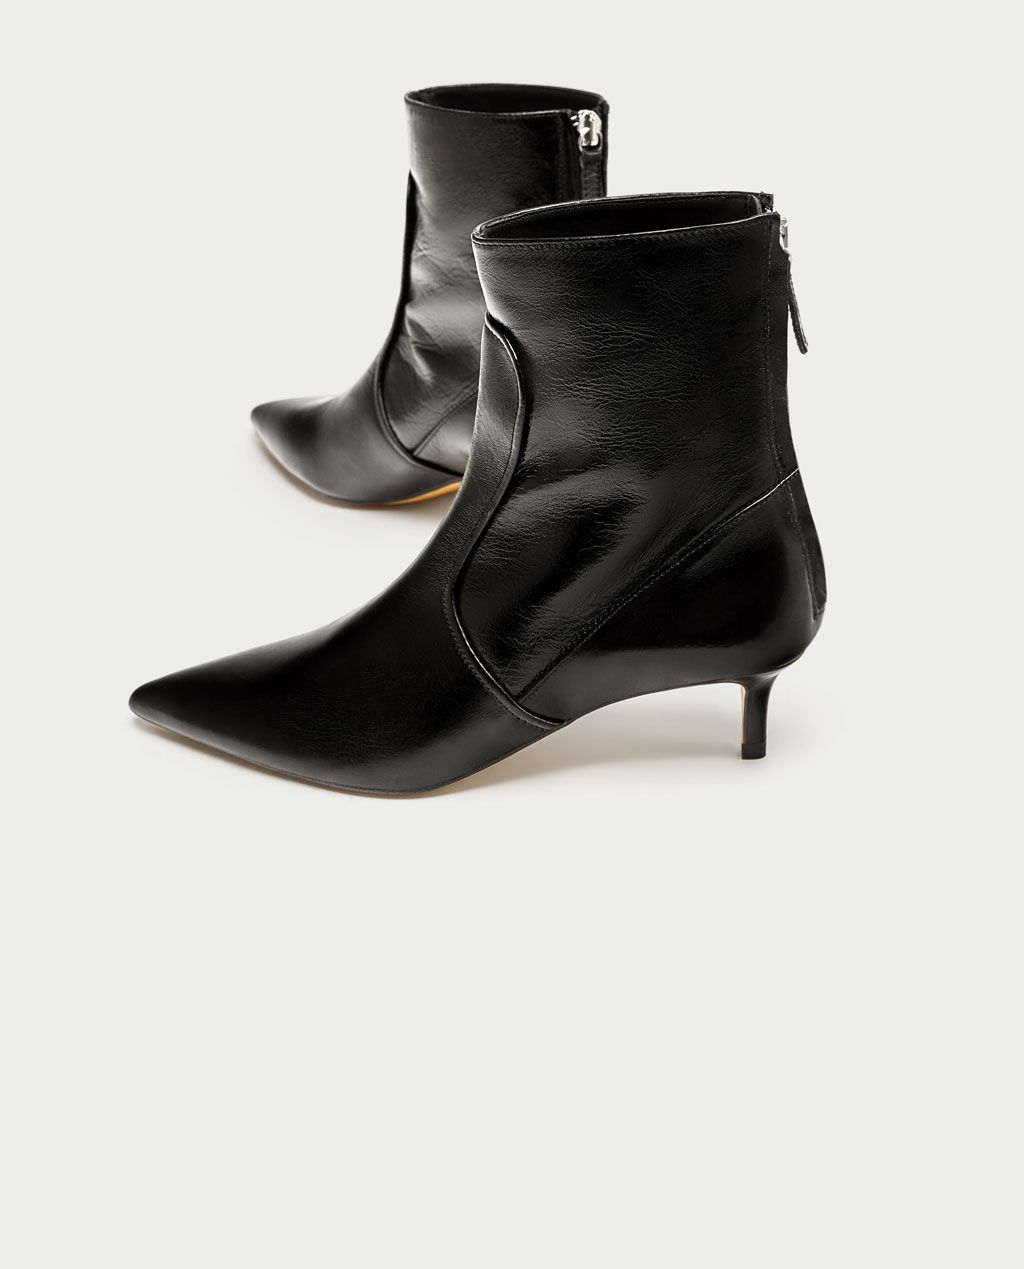 LEATHER HIGH HEEL ANKLE BOOTS from Zara